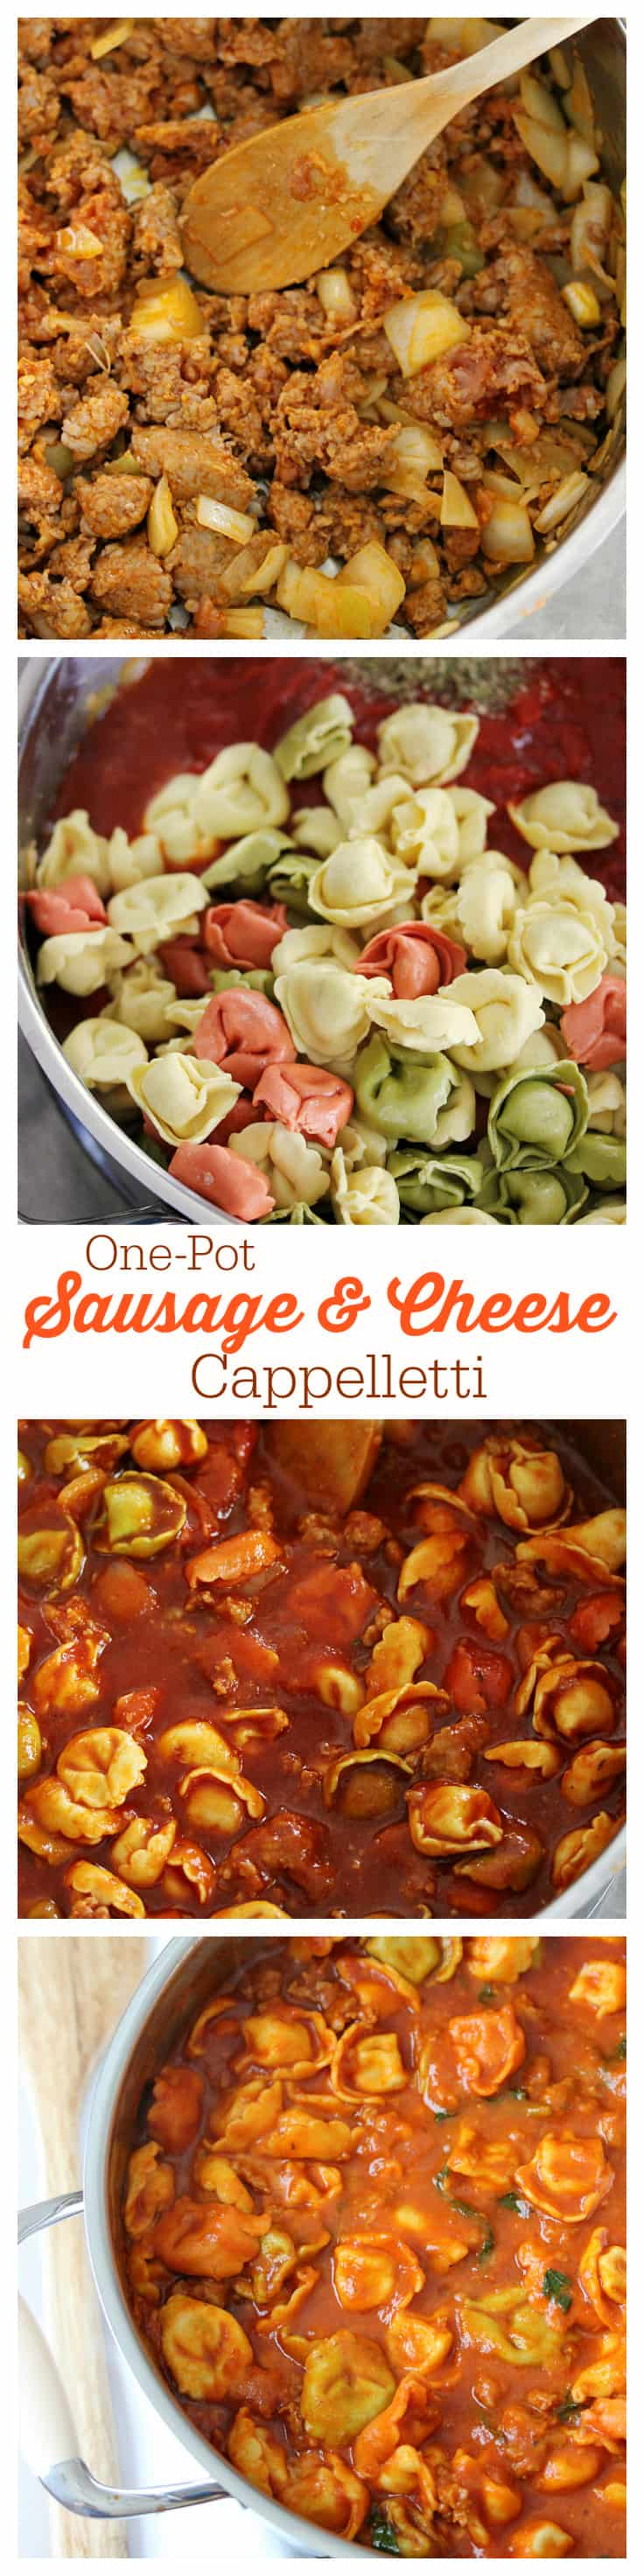 One-Pot Sausage & Cheese Cappelletti - dinner is served in less than 30 minutes with this simple #OnePotPasta recipe! Made with fresh pasta, tomato sauce, hot Italian sausage, cheese and more.